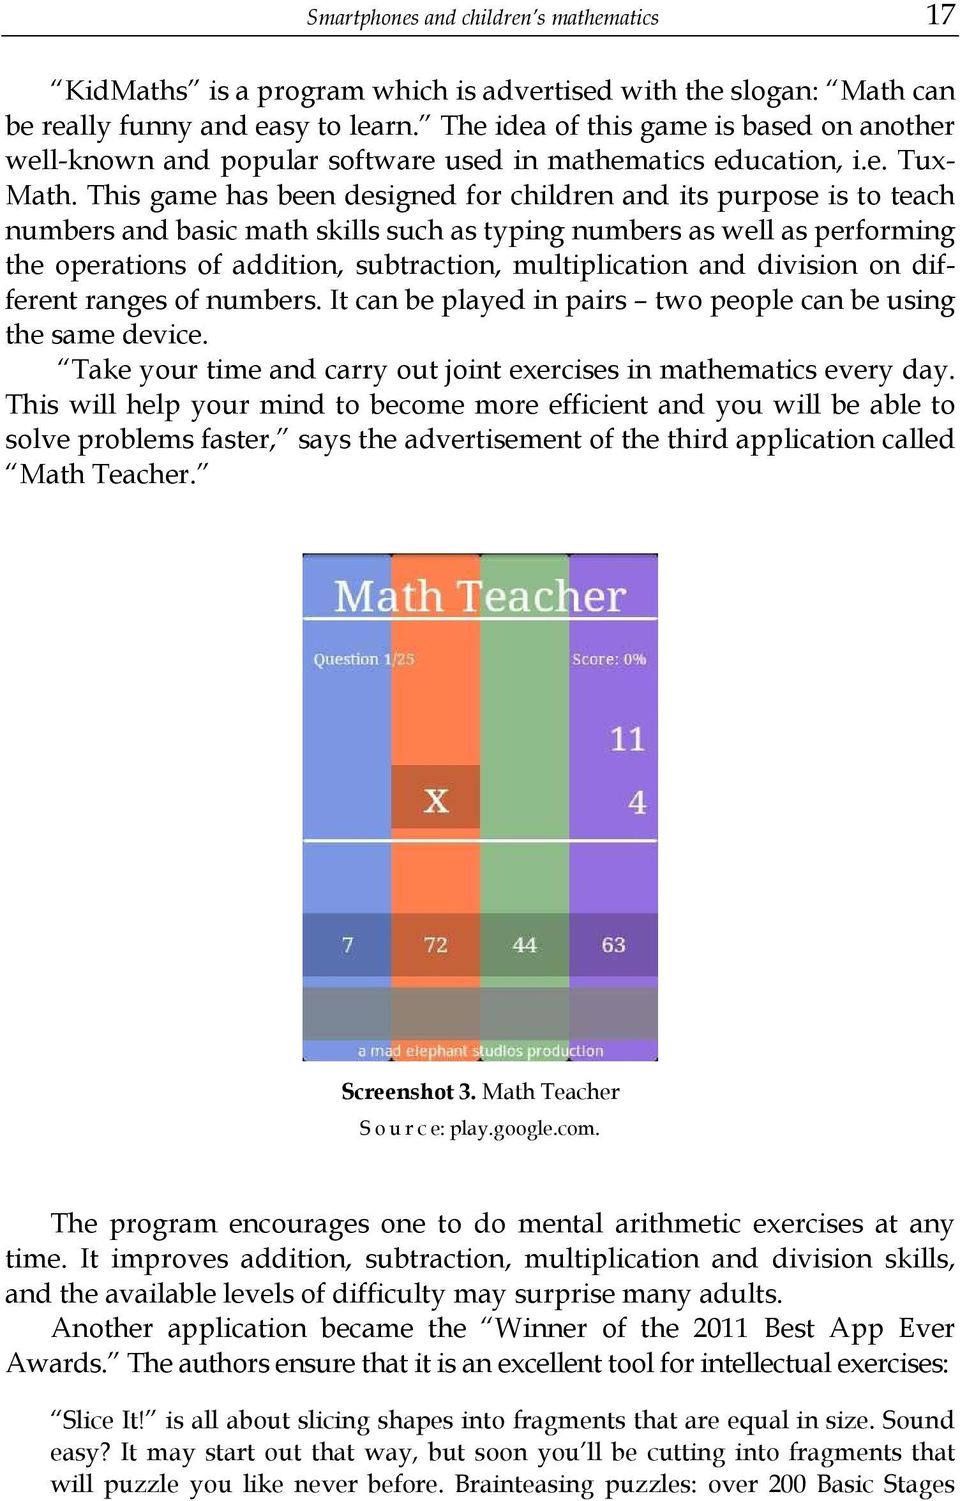 This game has been designed for children and its purpose is to teach numbers and basic math skills such as typing numbers as well as performing the operations of addition, subtraction, multiplication